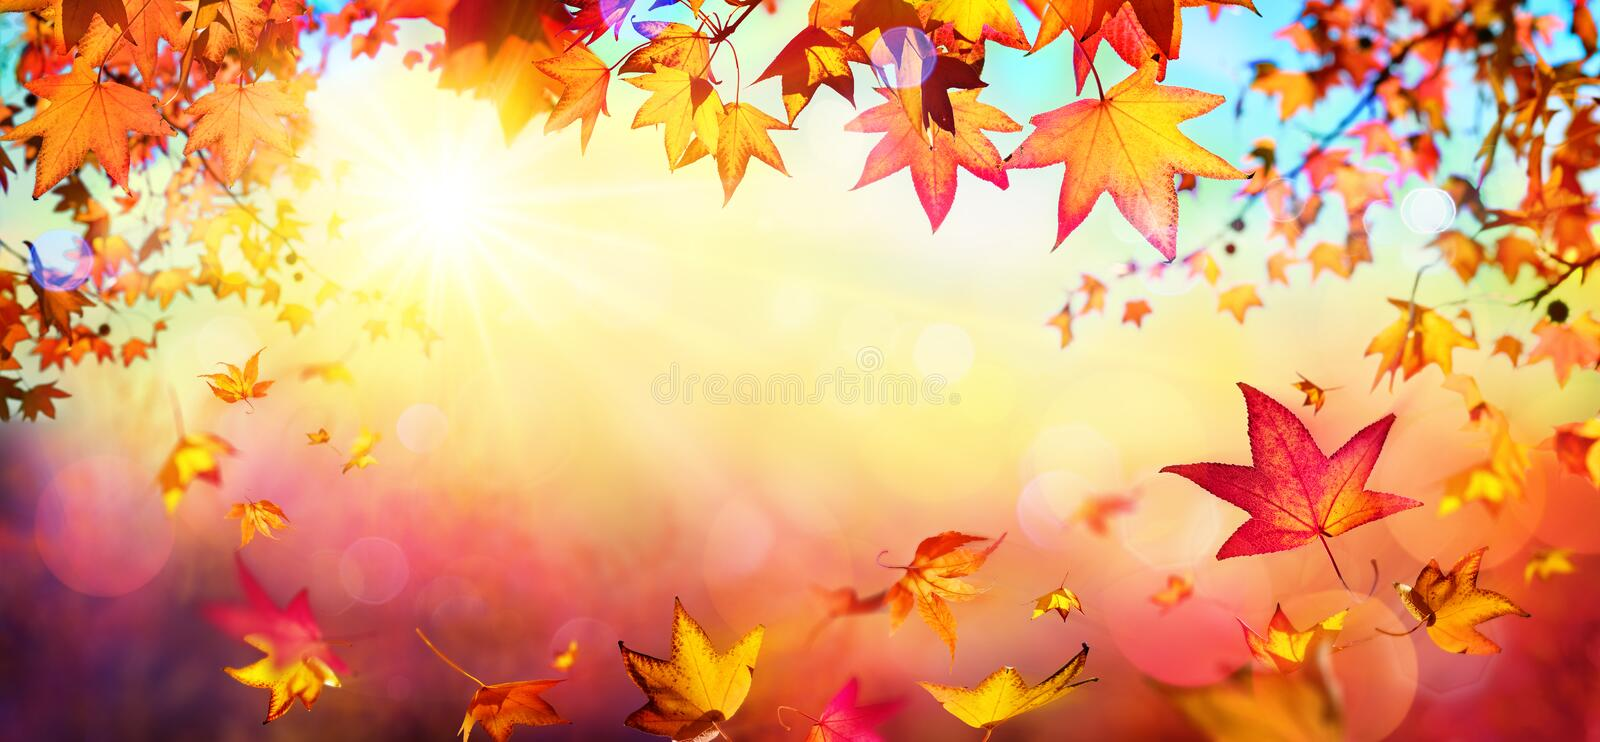 Falling Autumn Red Leaves With Sunlight royalty free stock photo